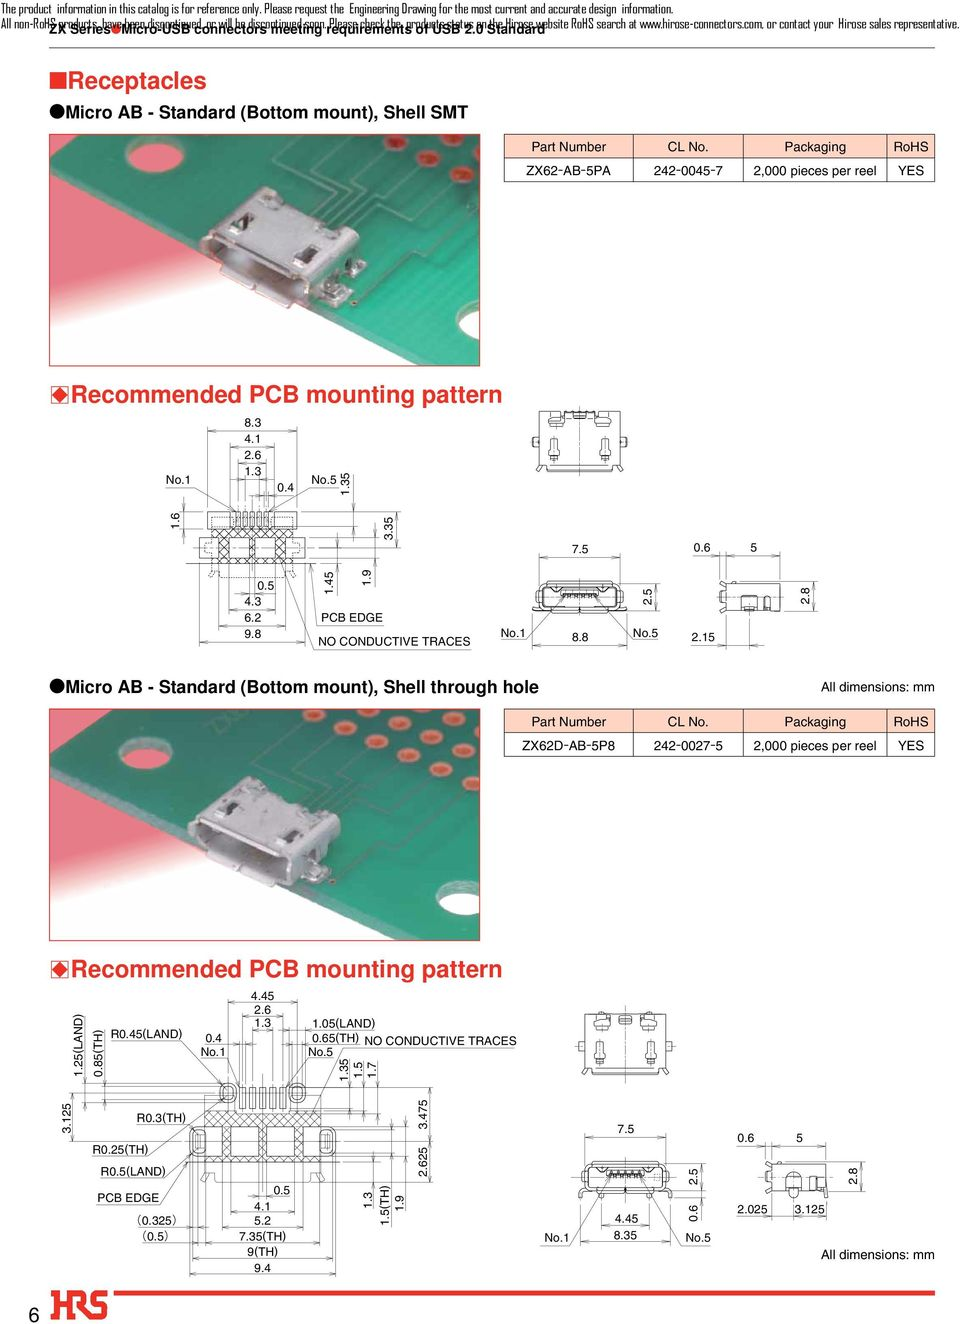 Receptacles Micro AB - Standard (Bottom mount), Shell SMT ZX62-AB-5PA 242-0045-7 2,000 pieces per reel YES BRecommended PCB mounting pattern.3 4.1 0.4 5 1.6 3.35 7.5 0.6 5 0.5 4.3 6.2 9. 1.45 1.